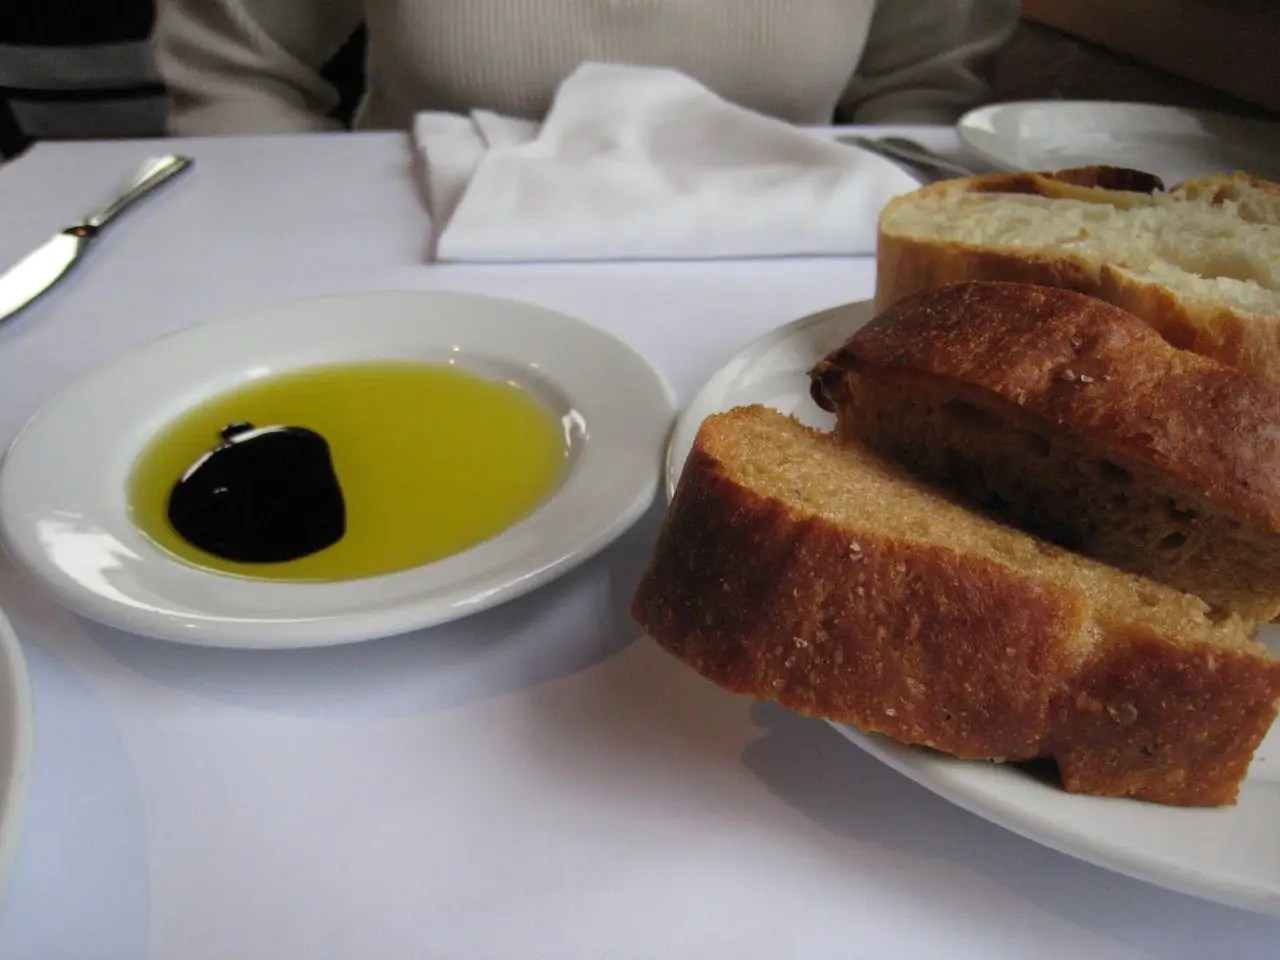 Swap for butter and margarine: Olive oil